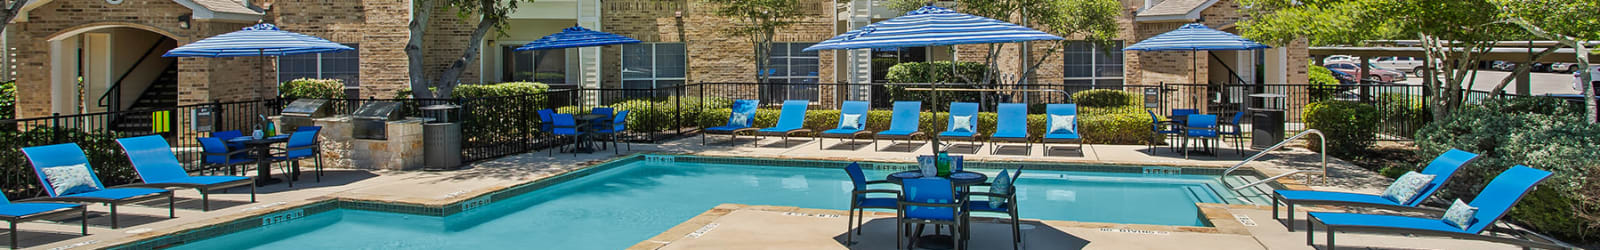 Contact us at Stoneybrook Apartments & Townhomes in San Antonio, Texas